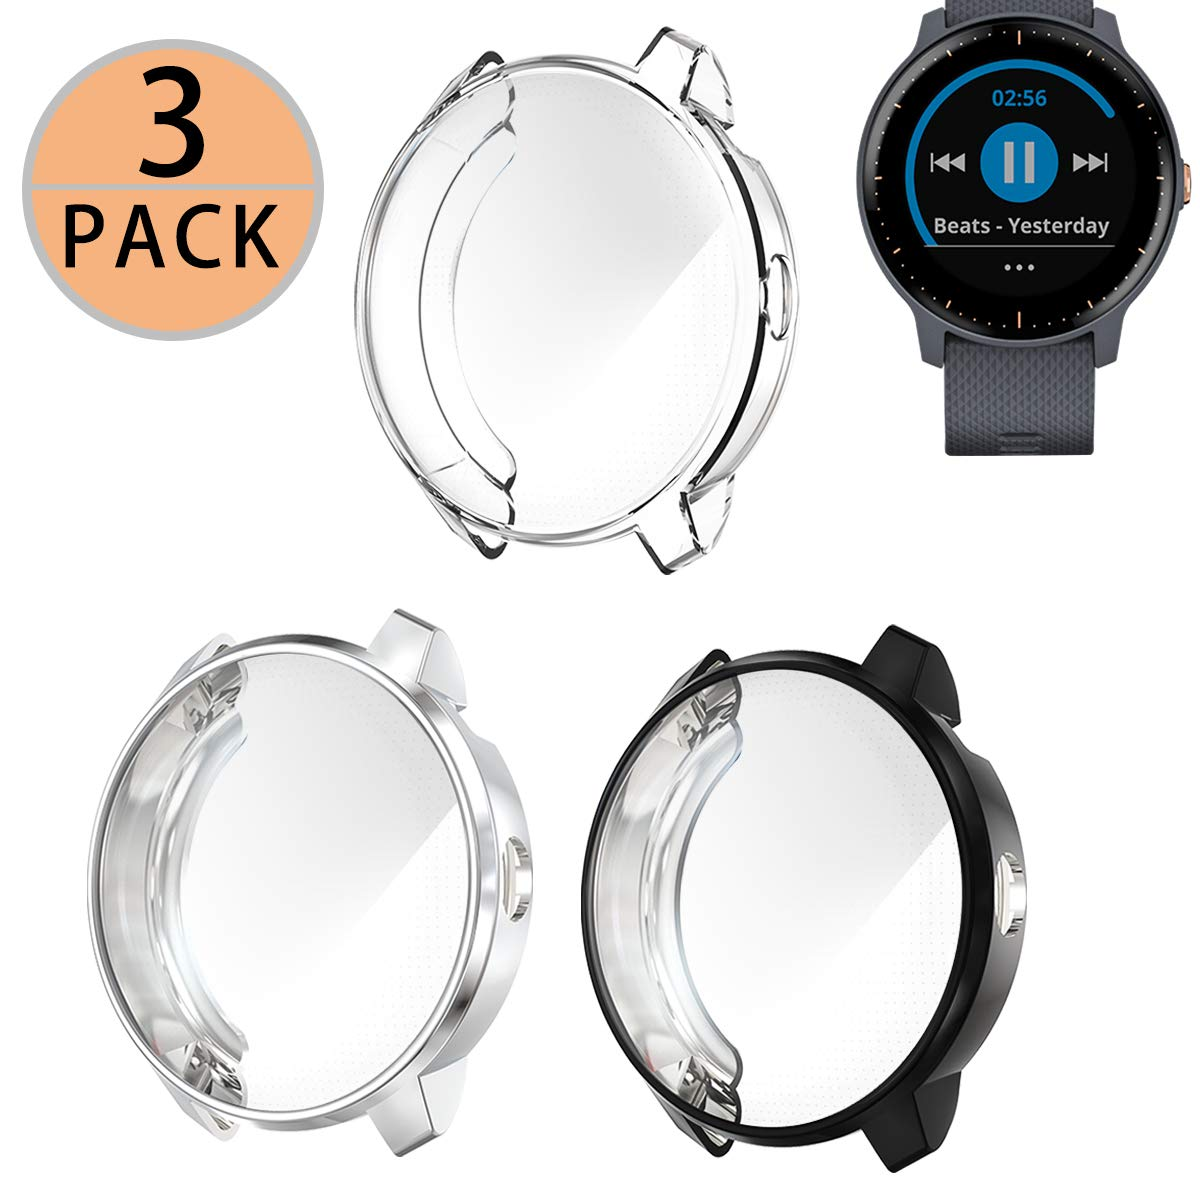 3 Pack Haojavo Compatible with Garmin Vivoactive 3 [Music] Screen Protector Case, Soft Plated TPU Scratch-Proof Full Protective Protector Cover for Garmin Vivoactive 3 Music Smartwatch Accessories by Haojavo